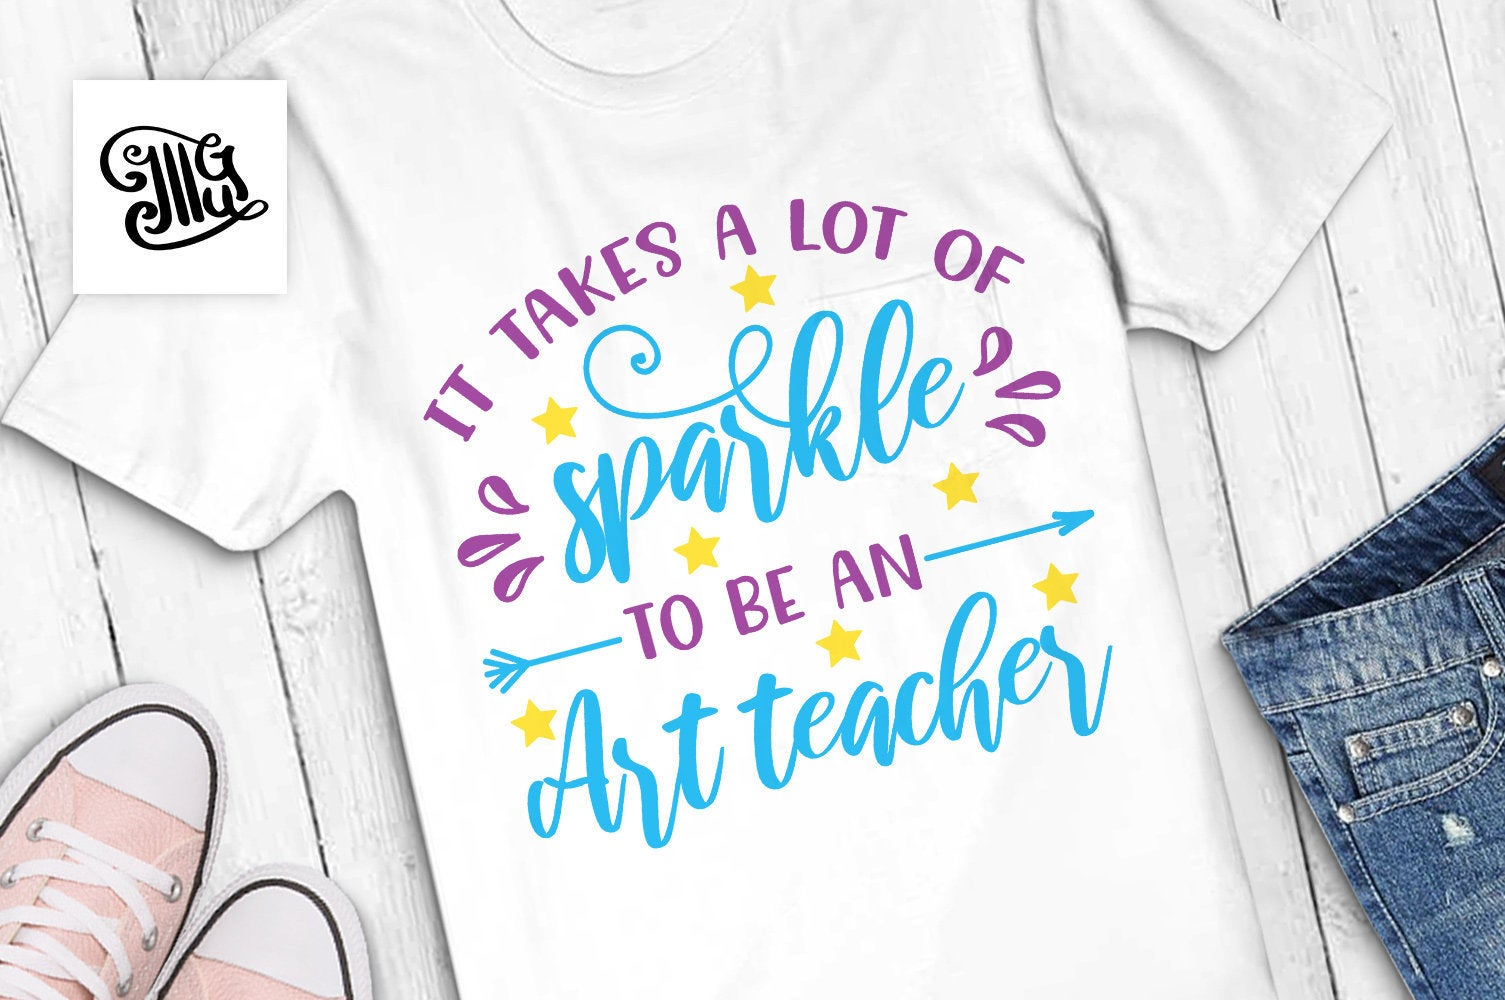 It takes a lot of sparkle to be an art teacher svg, art teacher clipart, art teacher shirt svg, art teacher sayings, art teacher quotes, svg-by Illustrator Guru